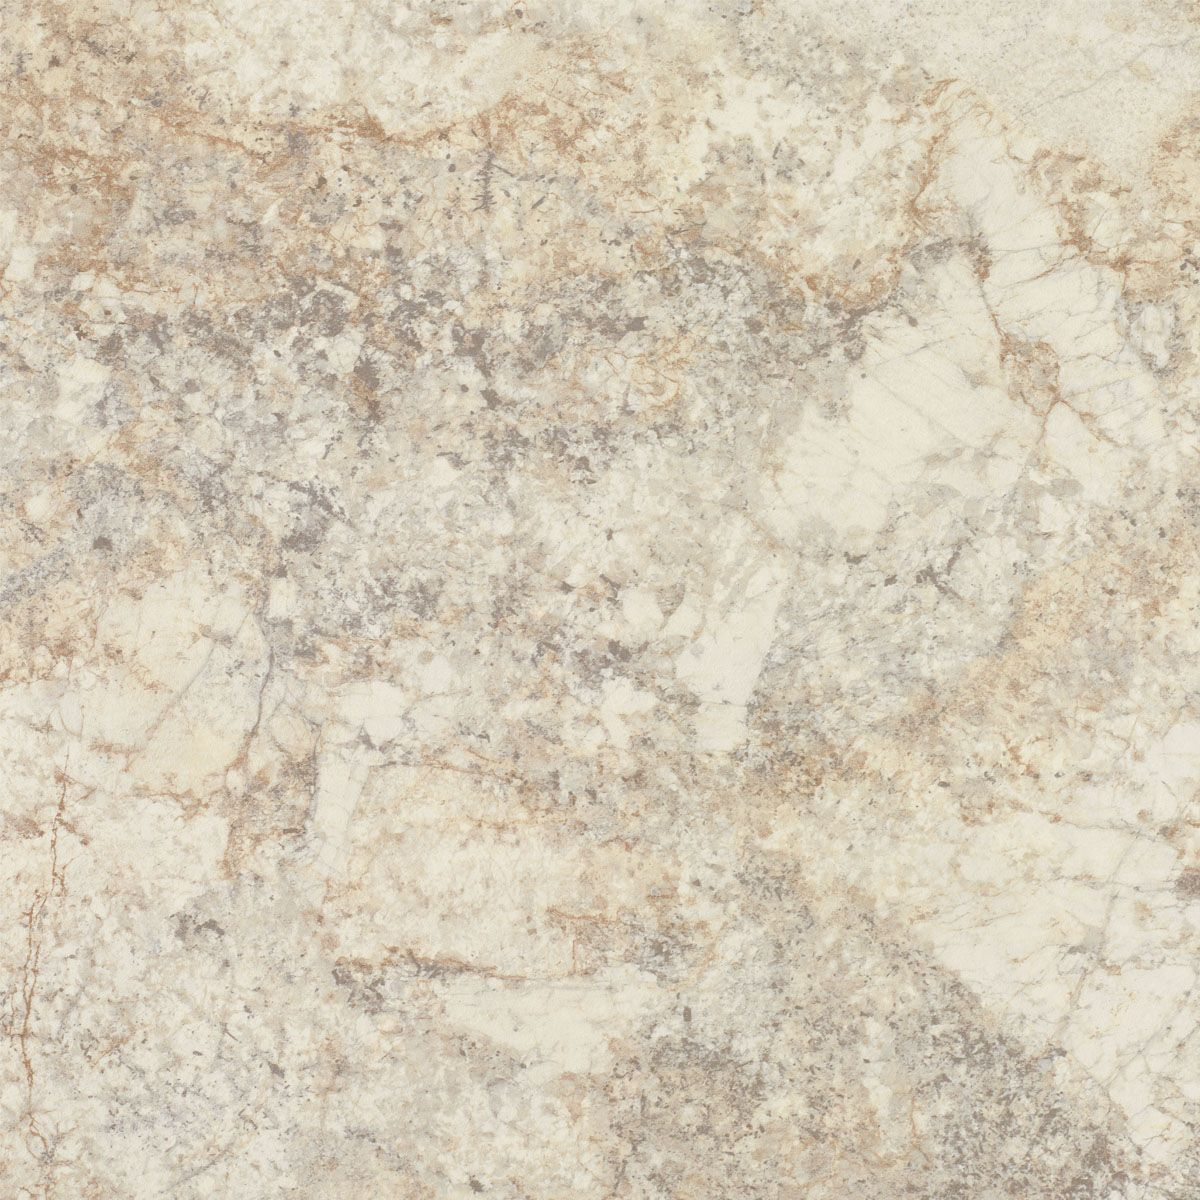 Mascarello Laminate Countertop Carrara Pearl This Is A Formica Countertops That Is